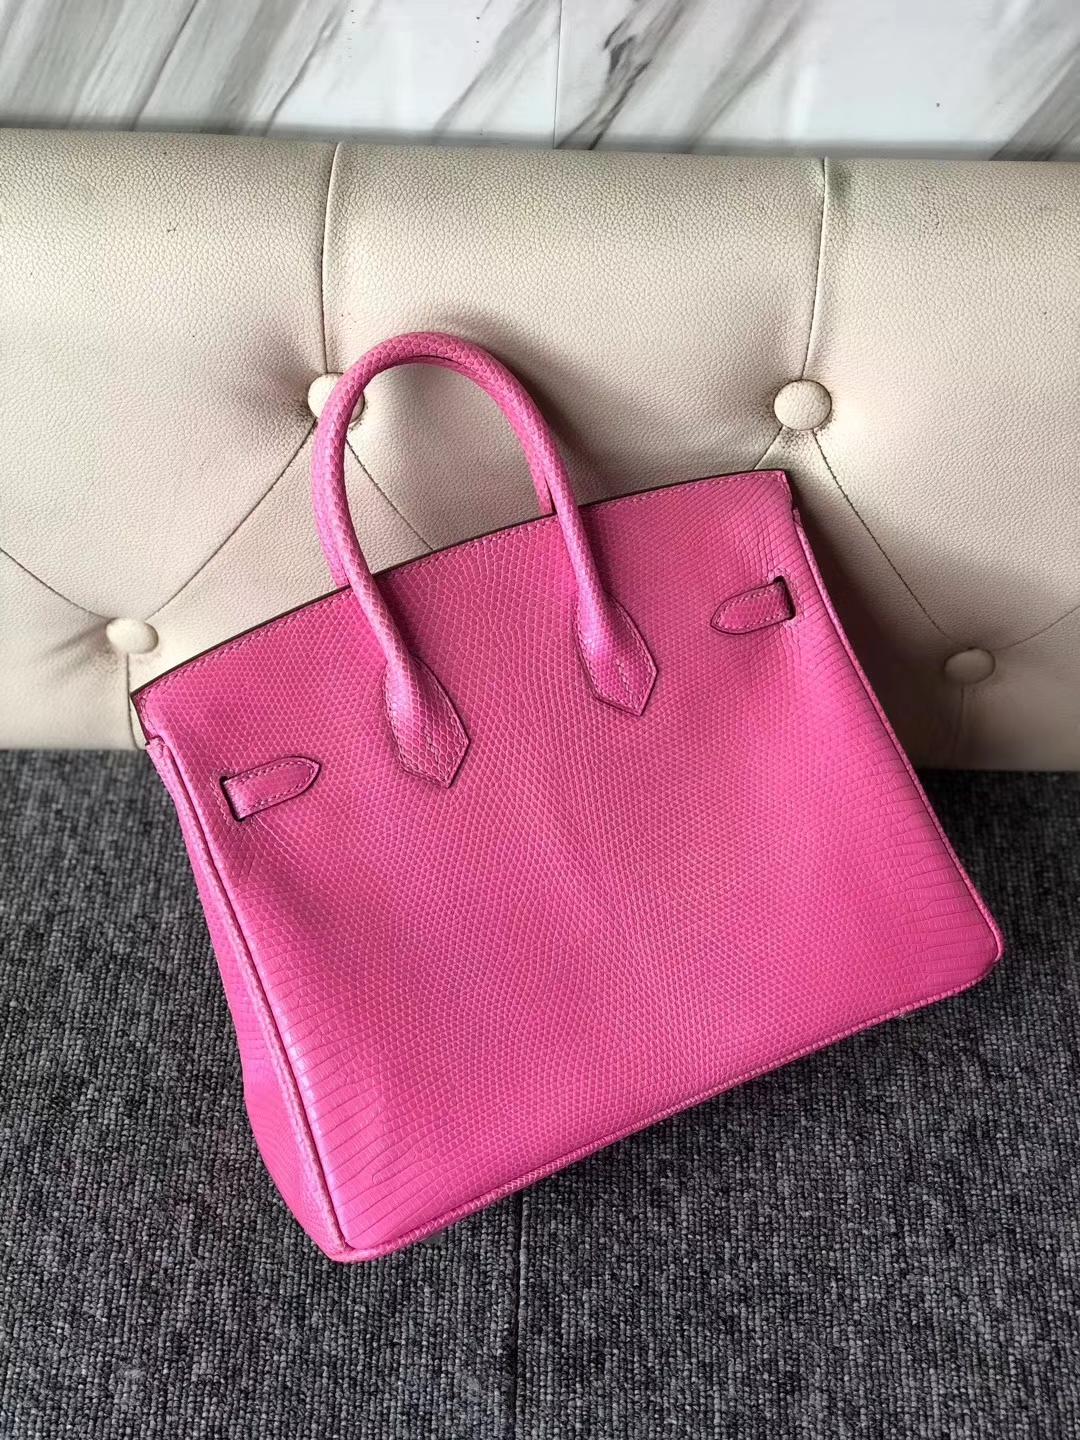 Fashion Hermes Shiny Lizard Birkin Bag25CM in Rose Strawberry Silver Hardware